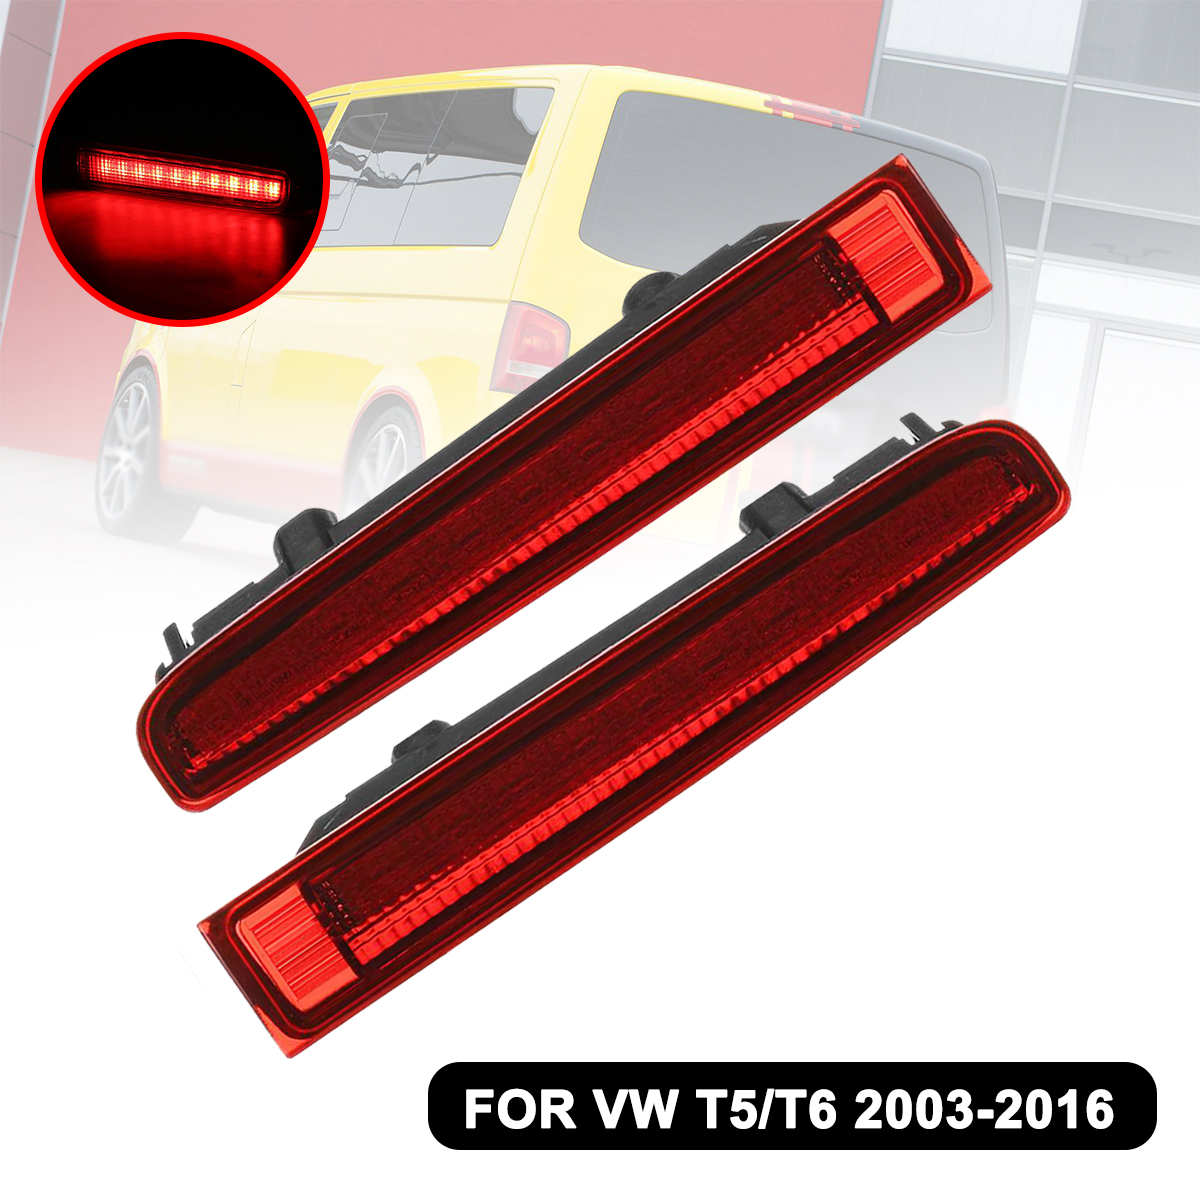 1 Pair Car Additional High Brake Stop Light Third For <font><b>VW</b></font> <font><b>T5</b></font> T6 for Transporter 2003-2016 High Mount Warning Turn Signal LED Lamp image